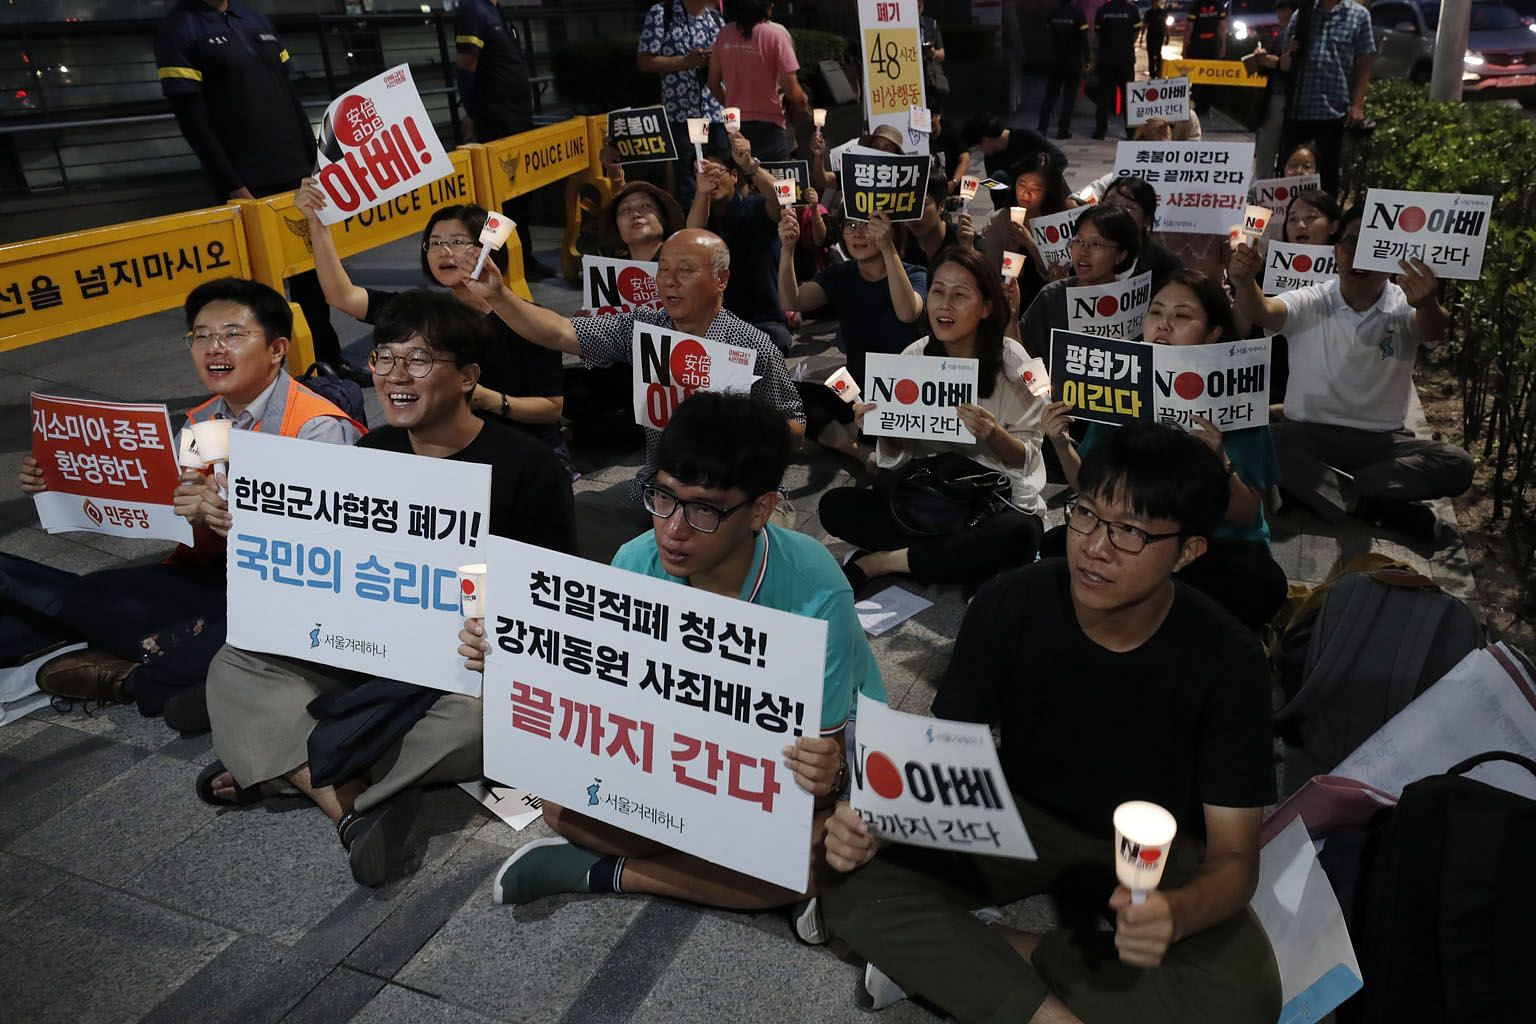 South Korean protesters at a rally targeted at the General Security of Military Information Agreement, in front of the Japanese Embassy in Seoul on Thursday. Local polls have indicated that more South Koreans are in favour of scrapping the deal, and